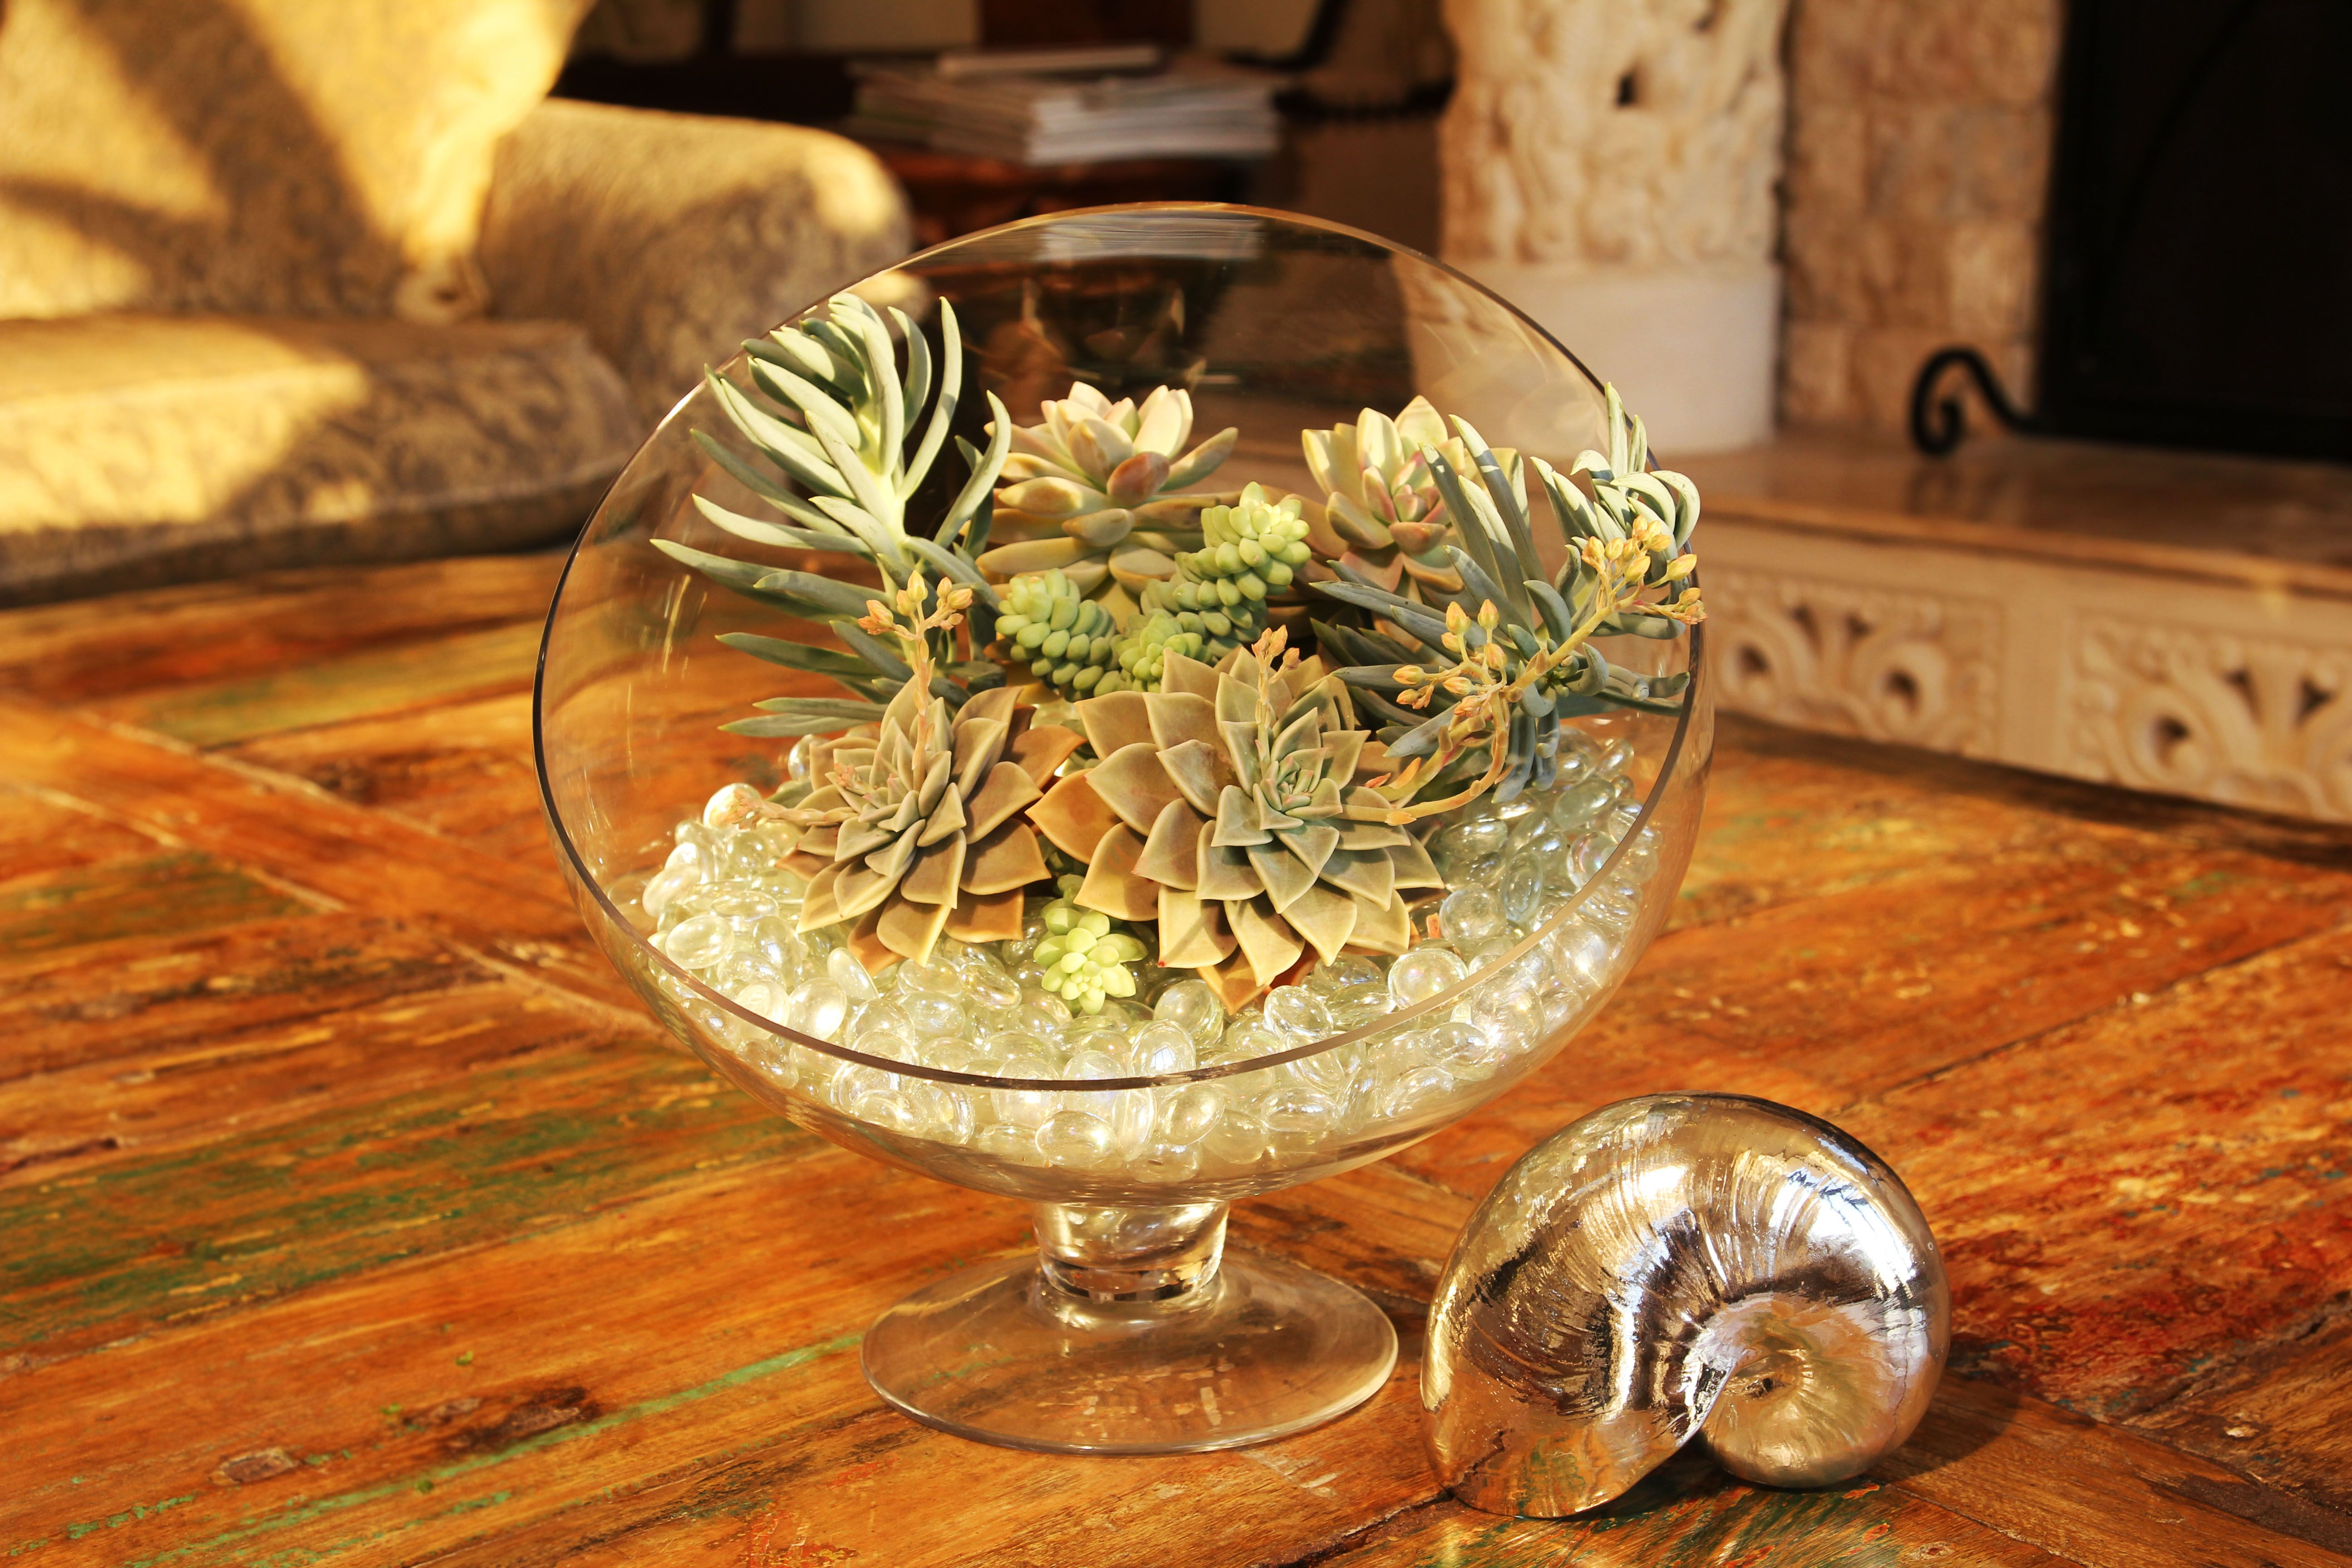 For This Succulent Arrangement I Used A Decorative Glass Bowl